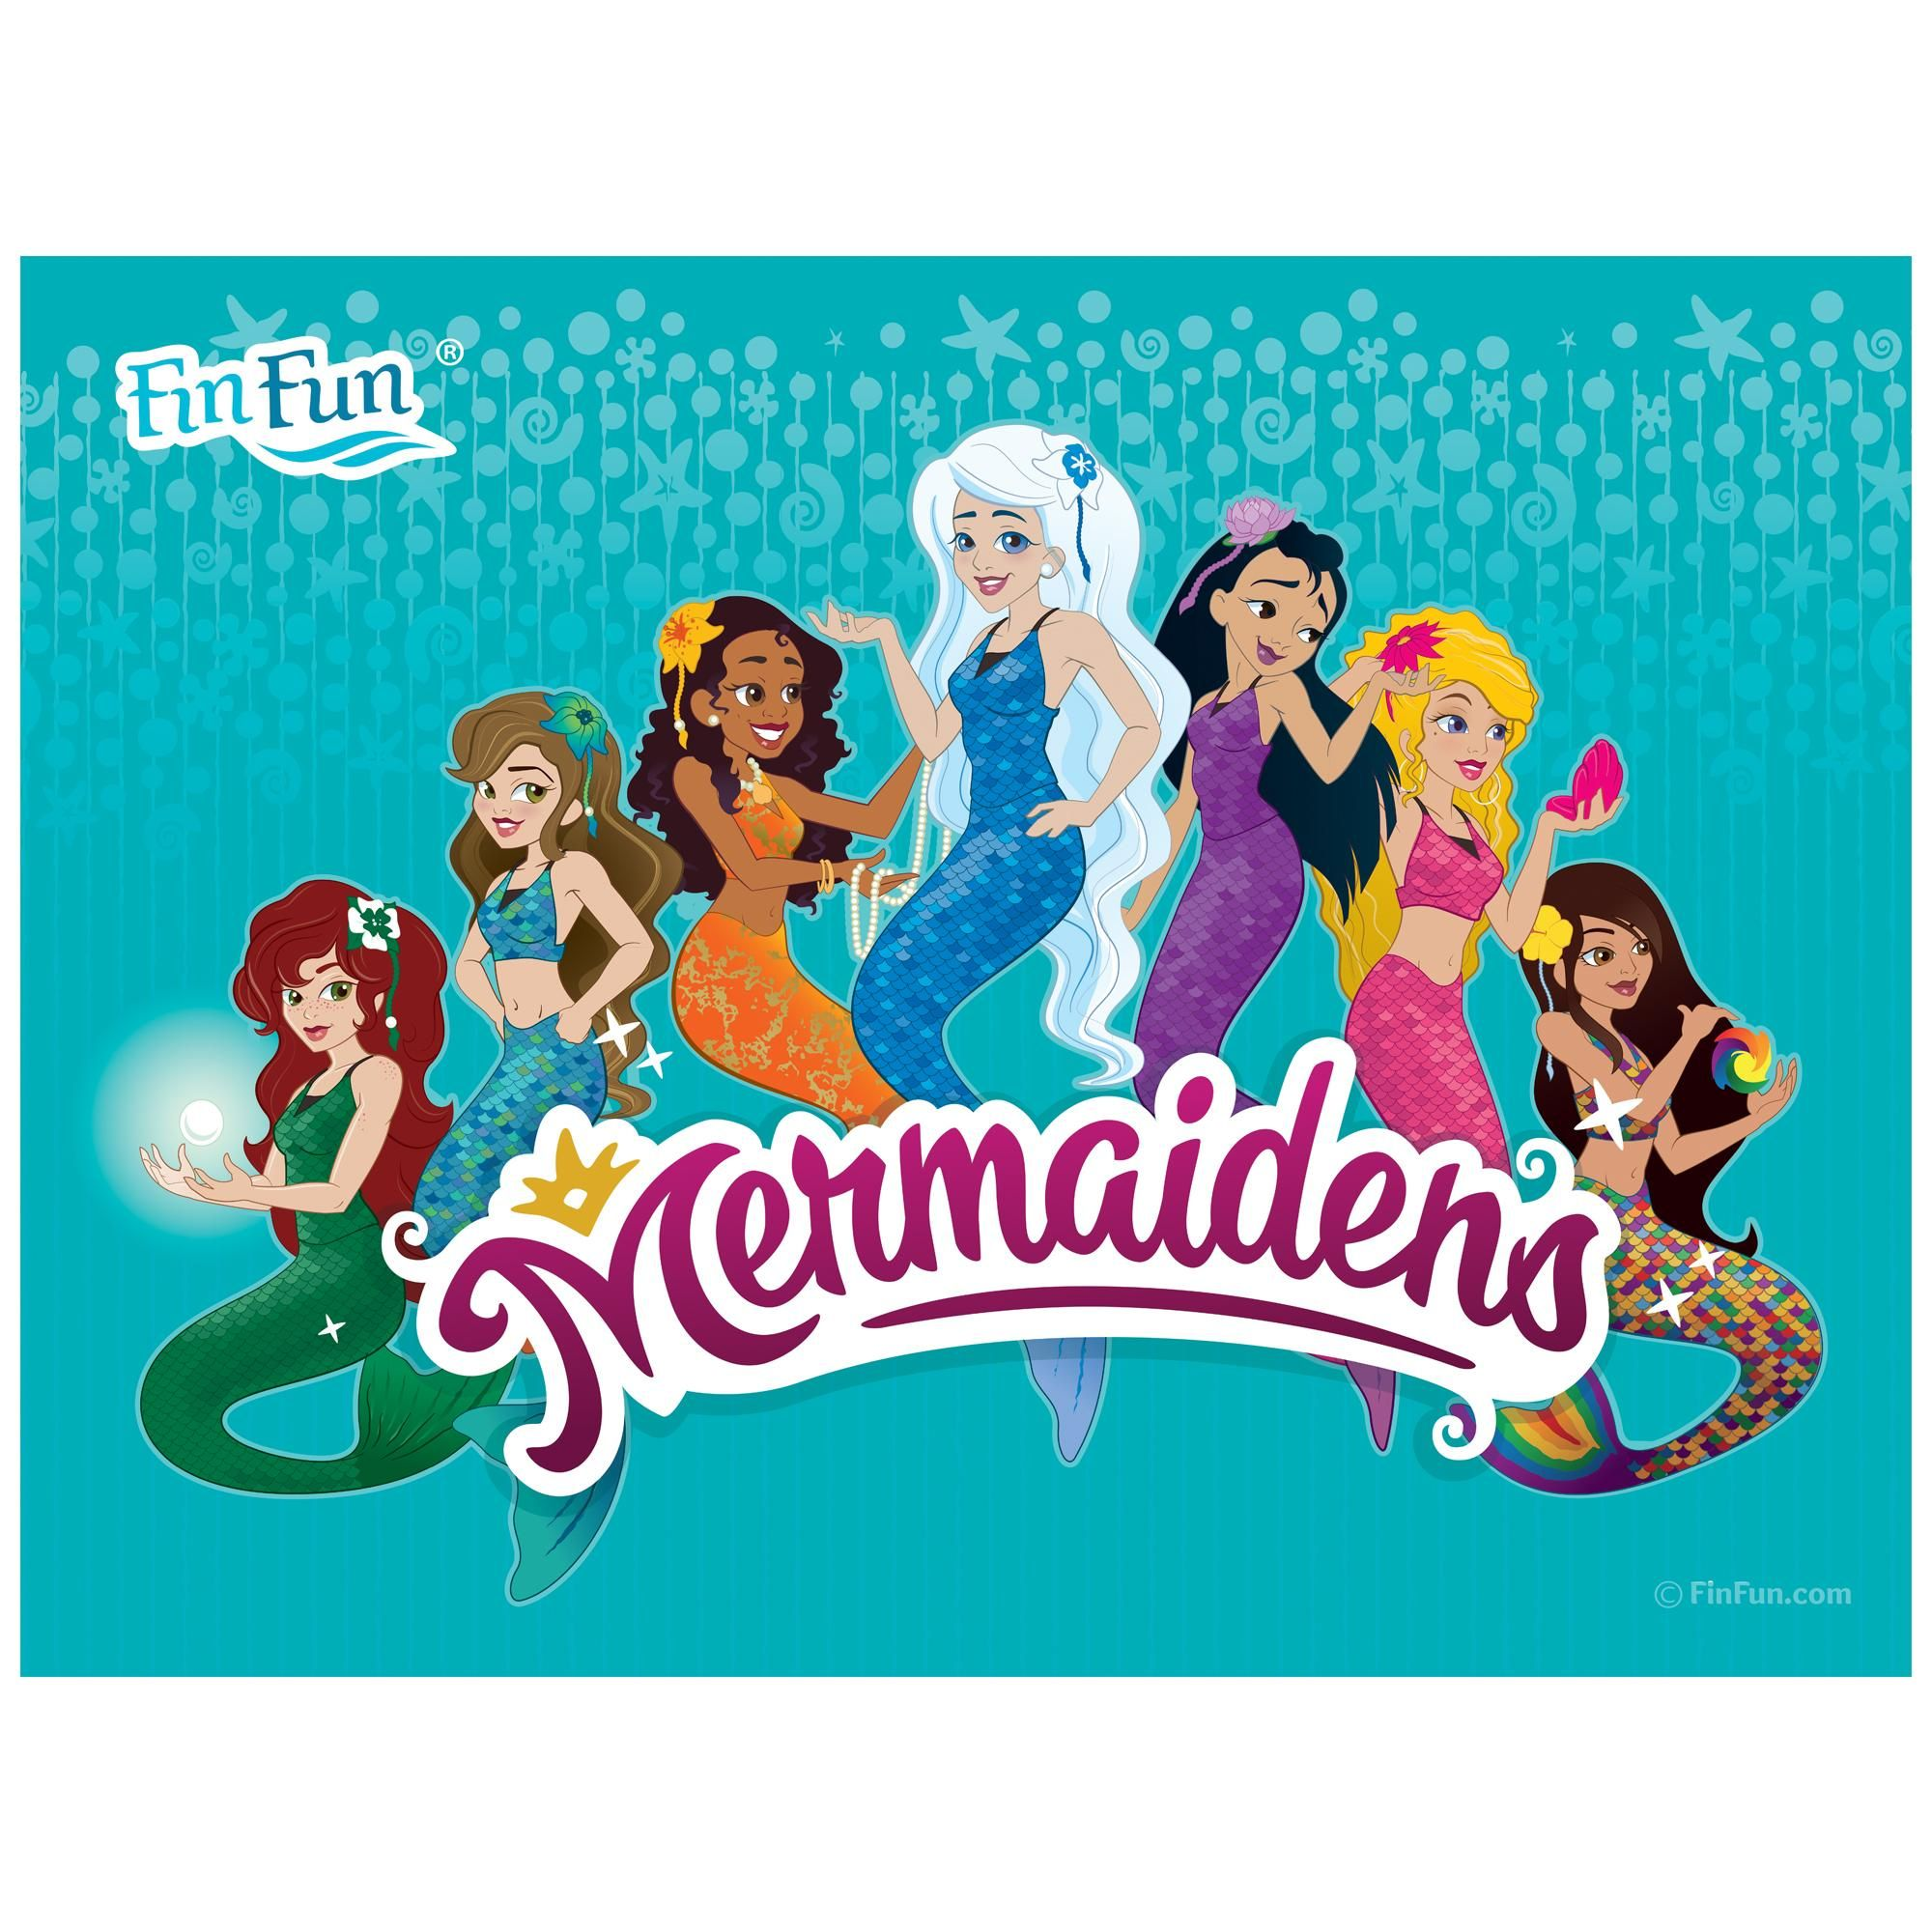 The 7 Royal Mermaidens Poster